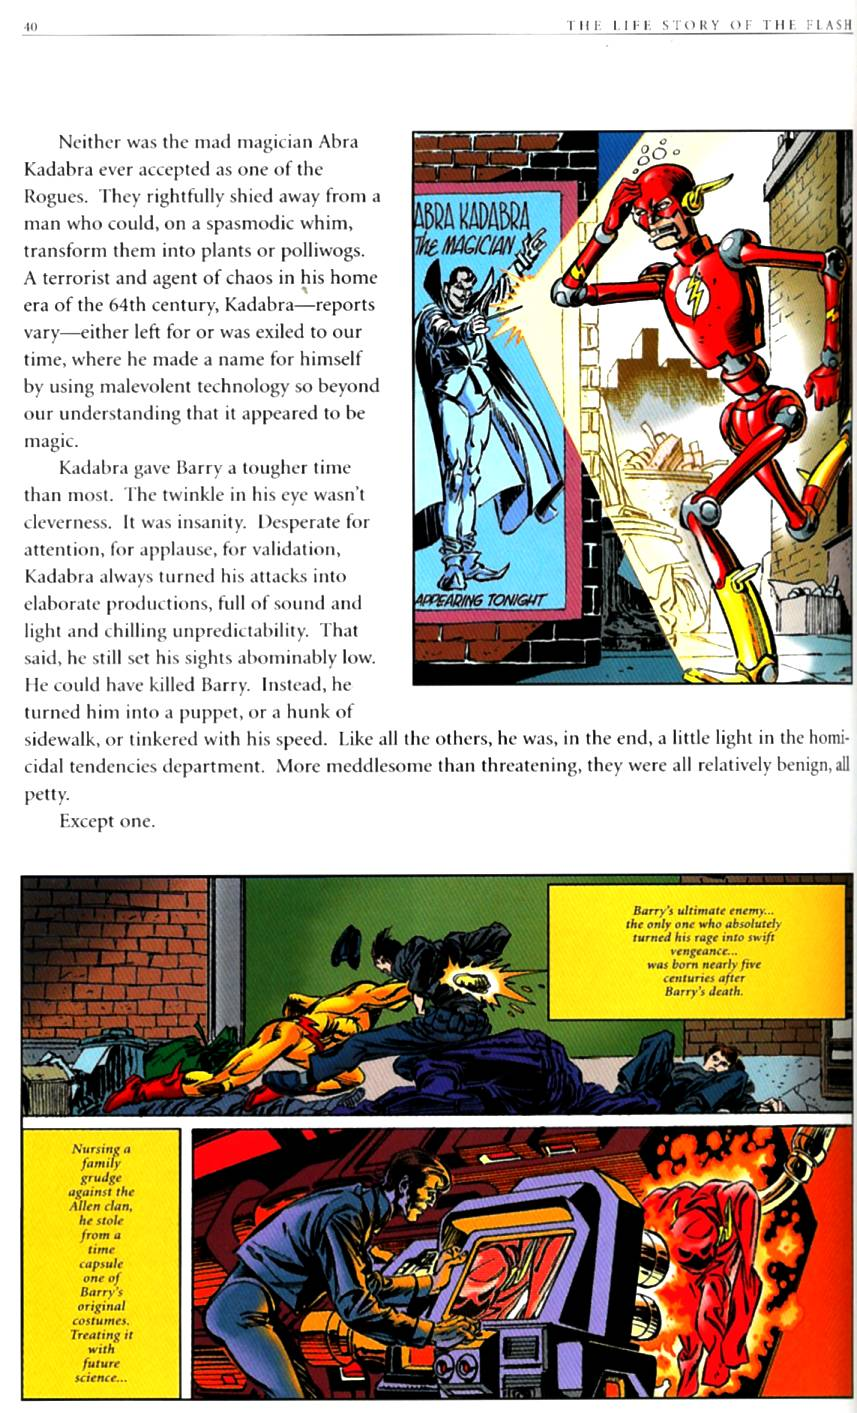 Read online The Life Story of the Flash comic -  Issue # Full - 42